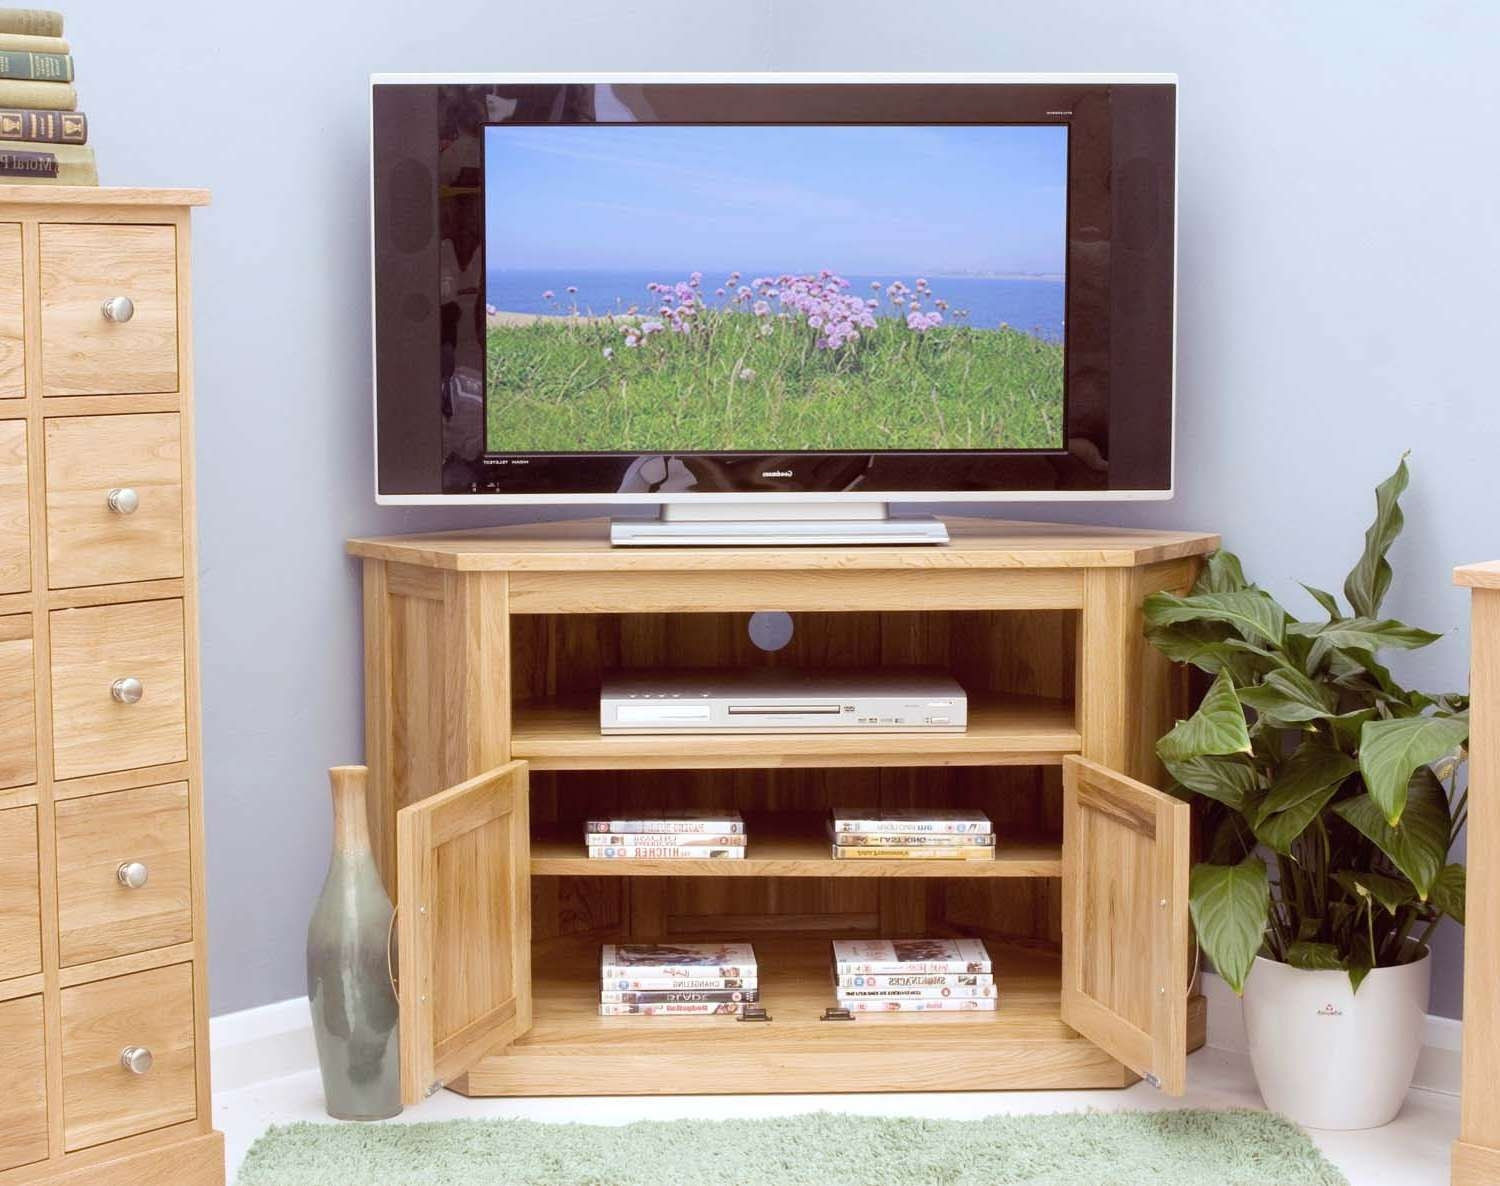 Modern Light Oak Tv Units | Solid Oak Furniture Online – Zurleys Uk Throughout Light Oak Corner Tv Cabinets (View 8 of 20)